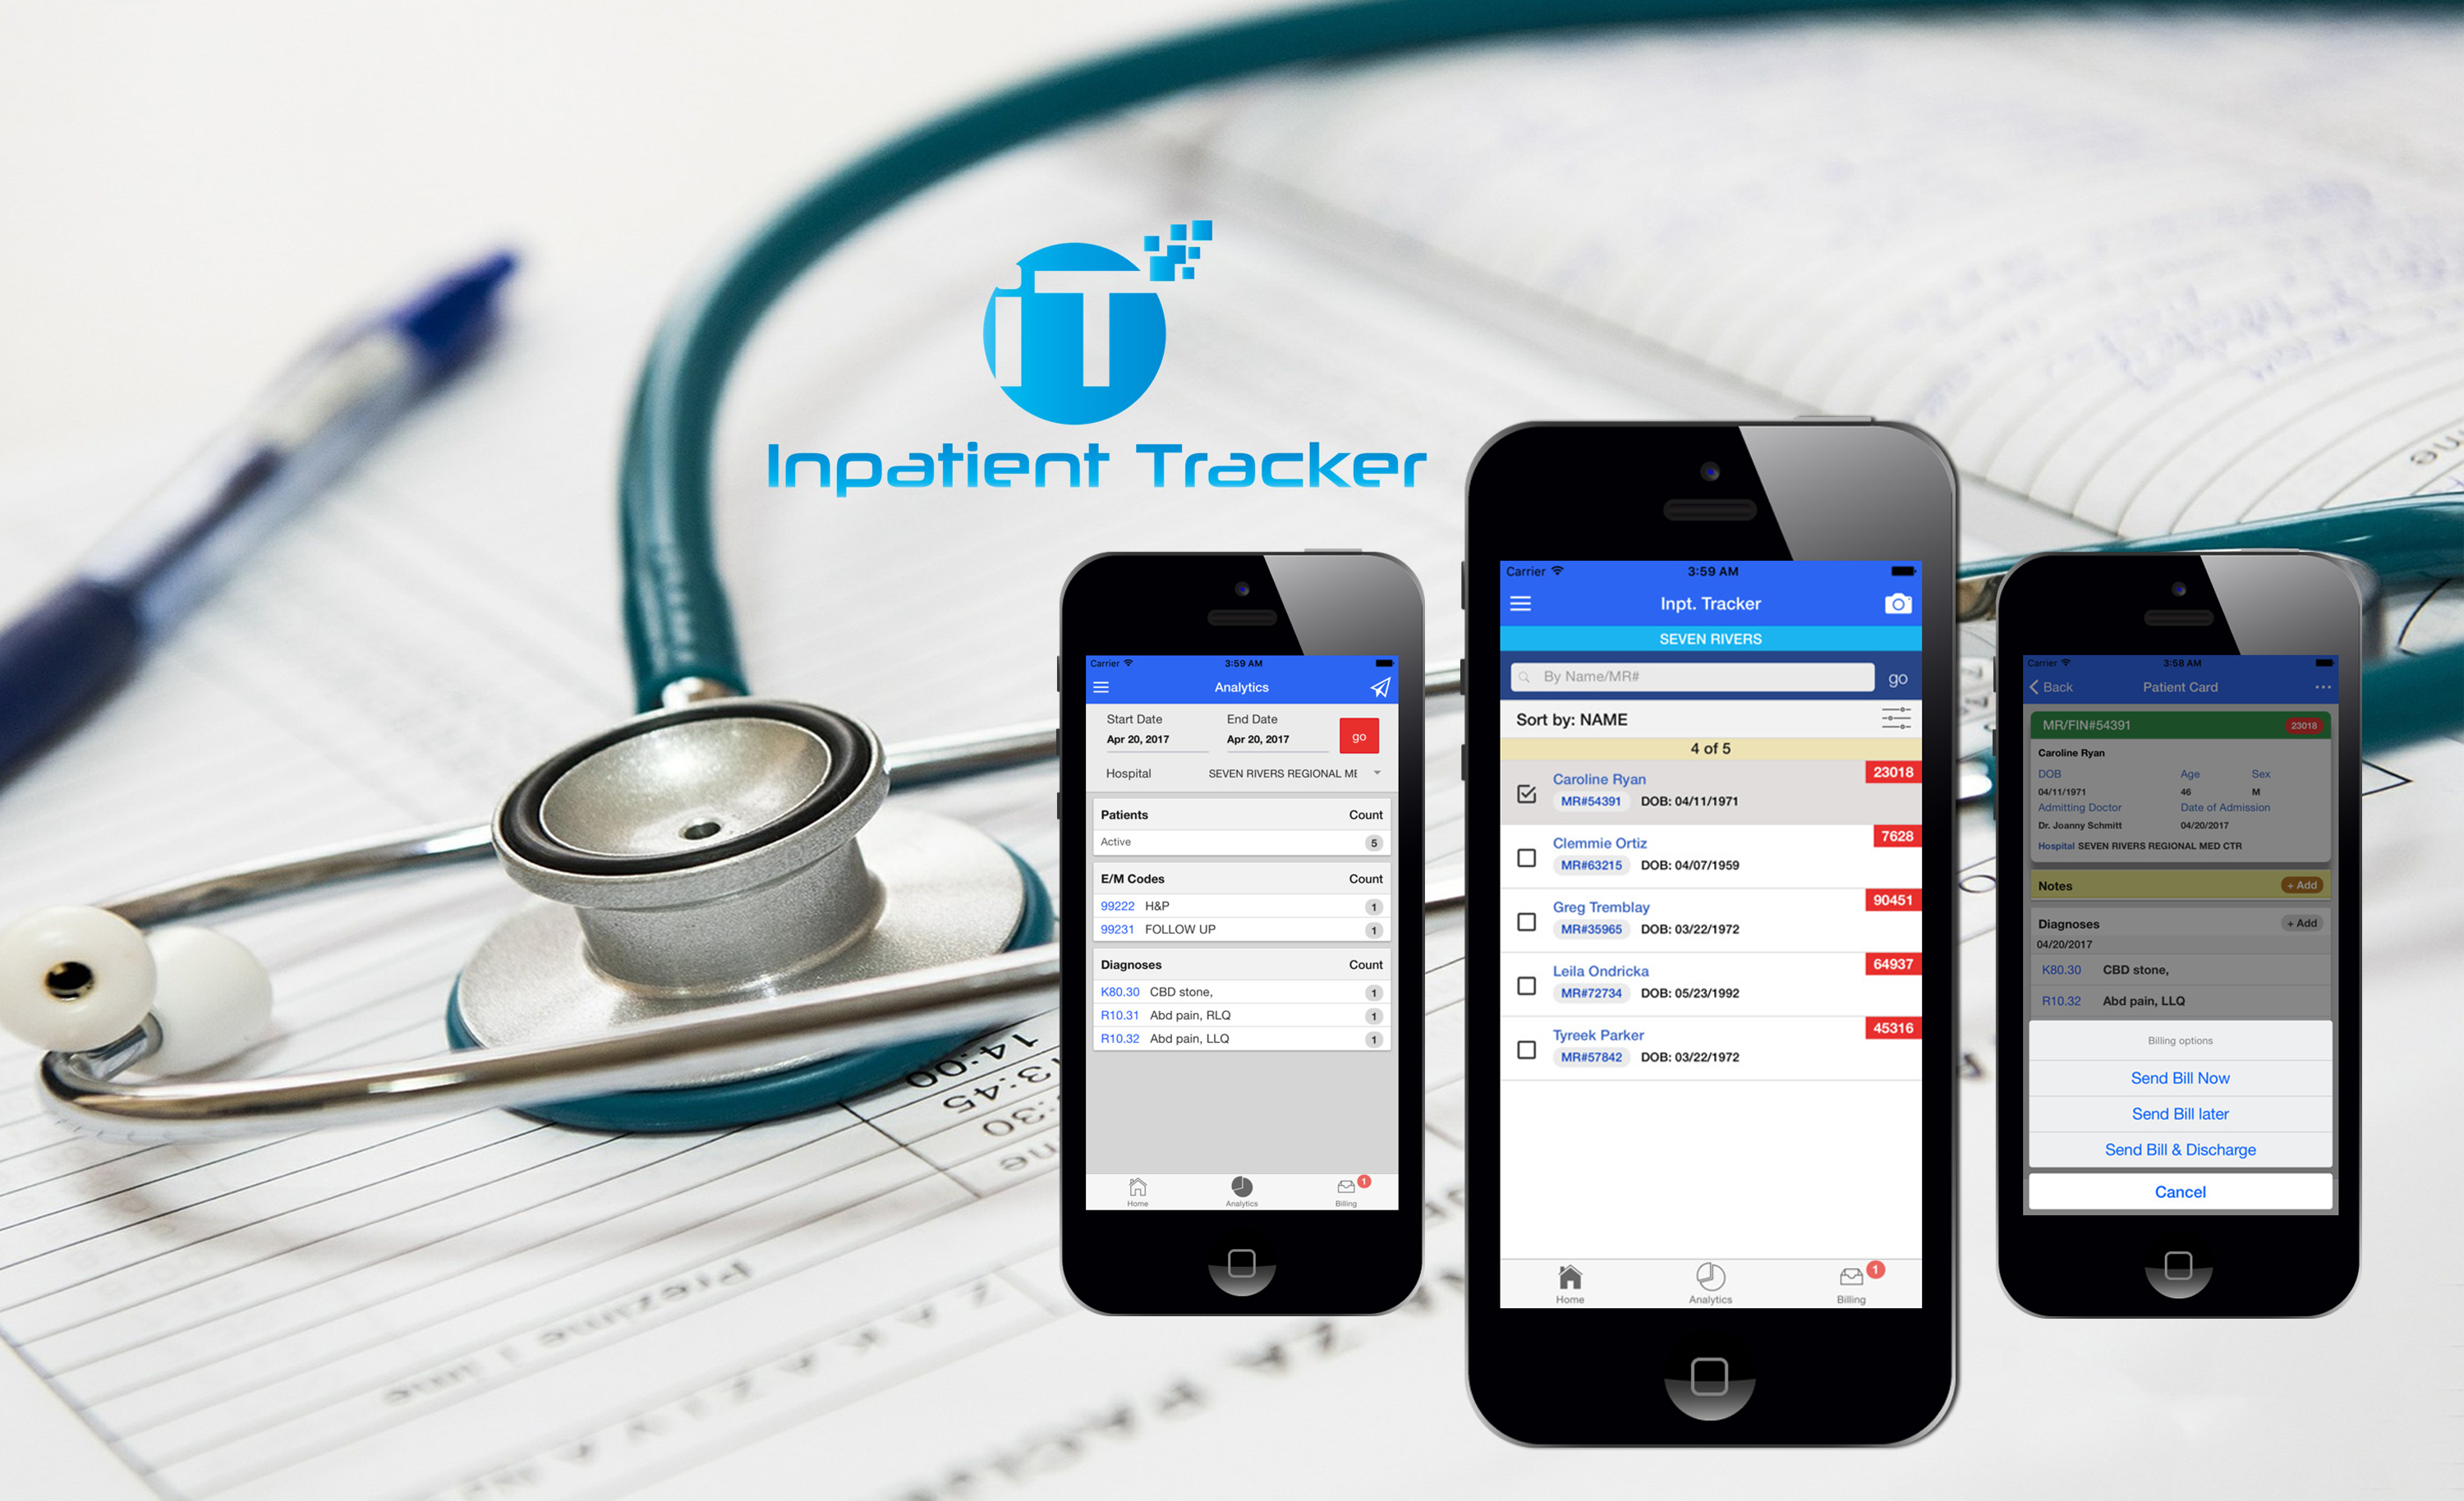 https://ptscout.com/wp-content/uploads/2015/11/Inpatient_Tracker_Product1.png